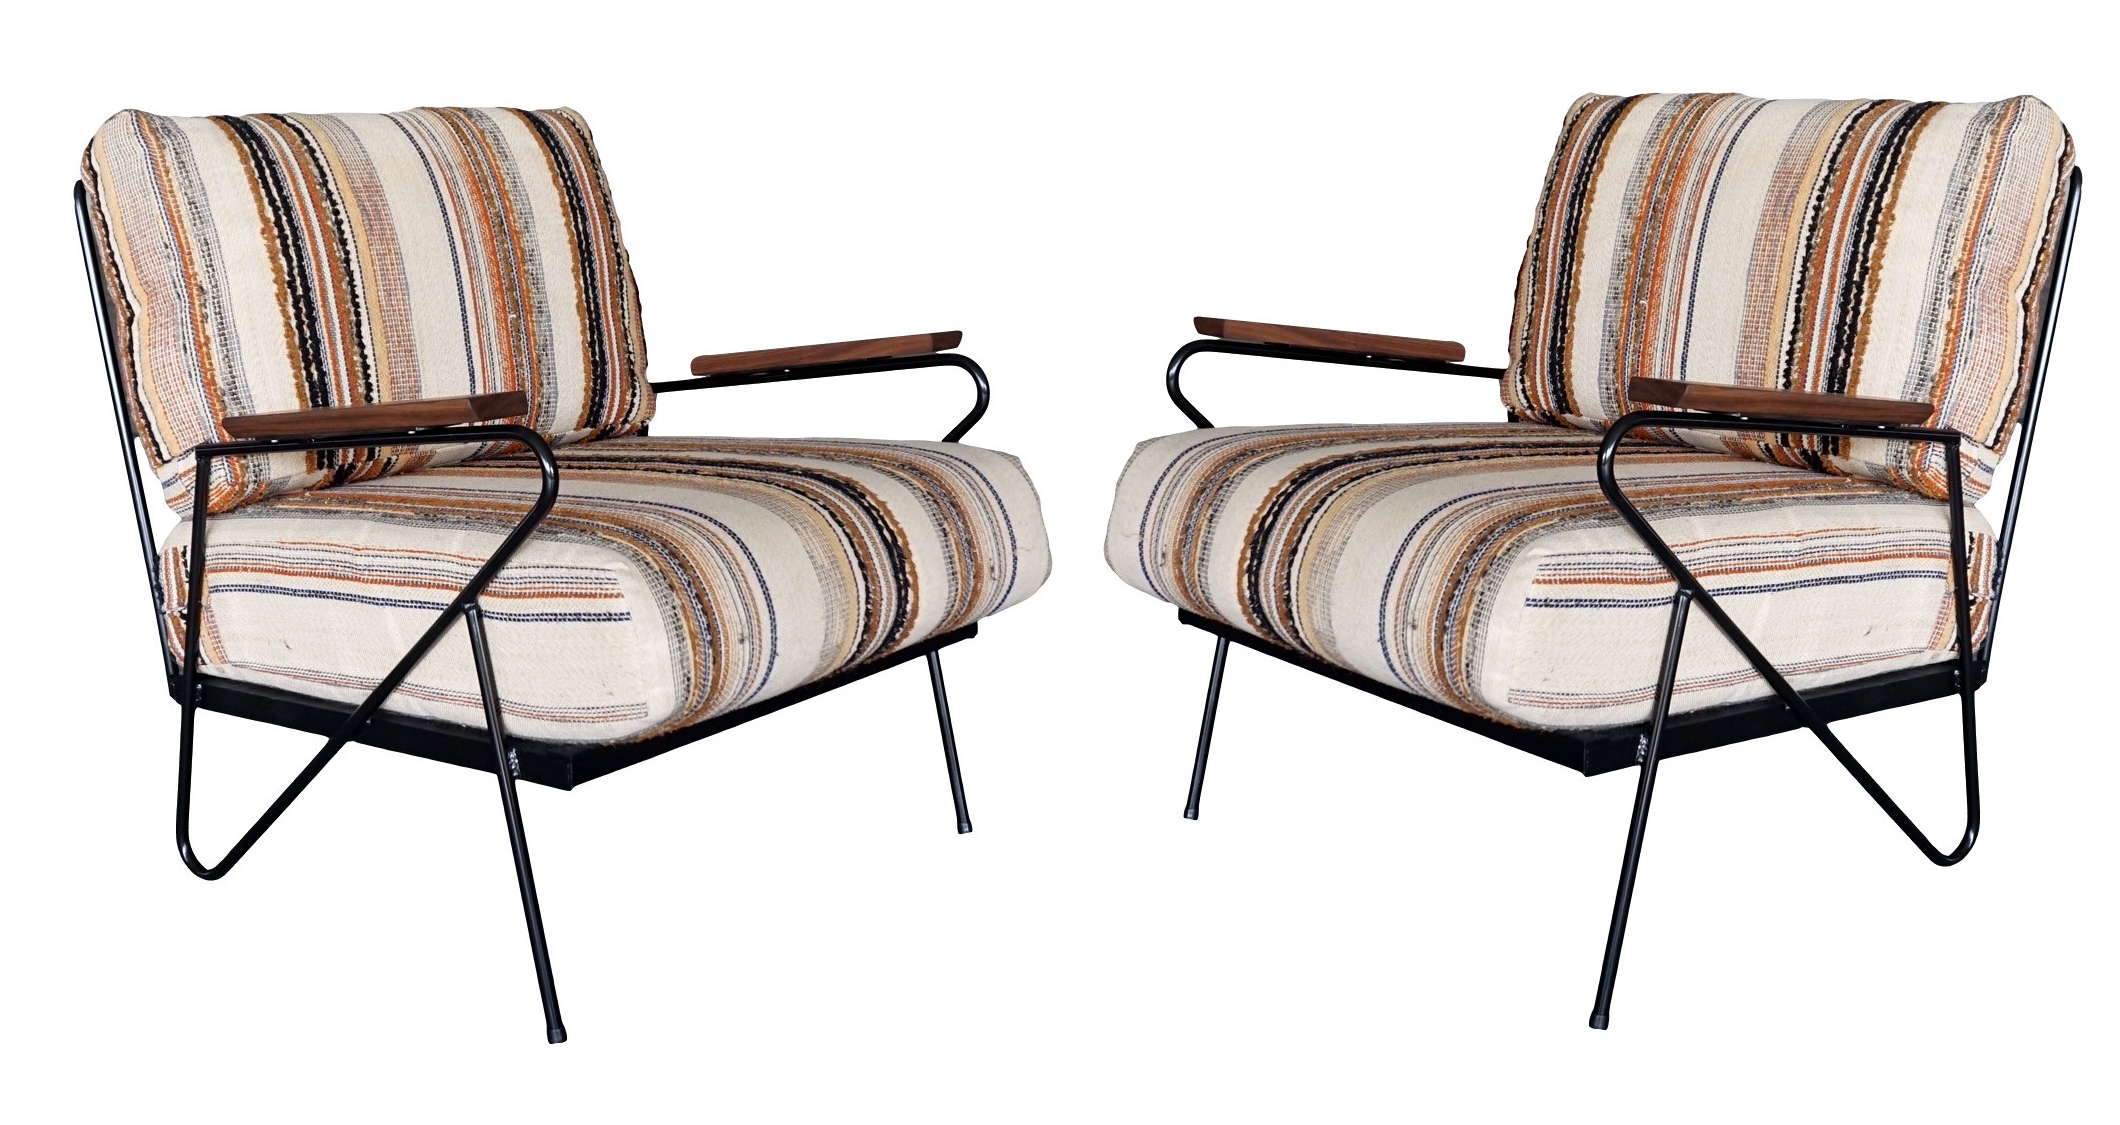 Upholstered Iron Lounge Chairs Pair